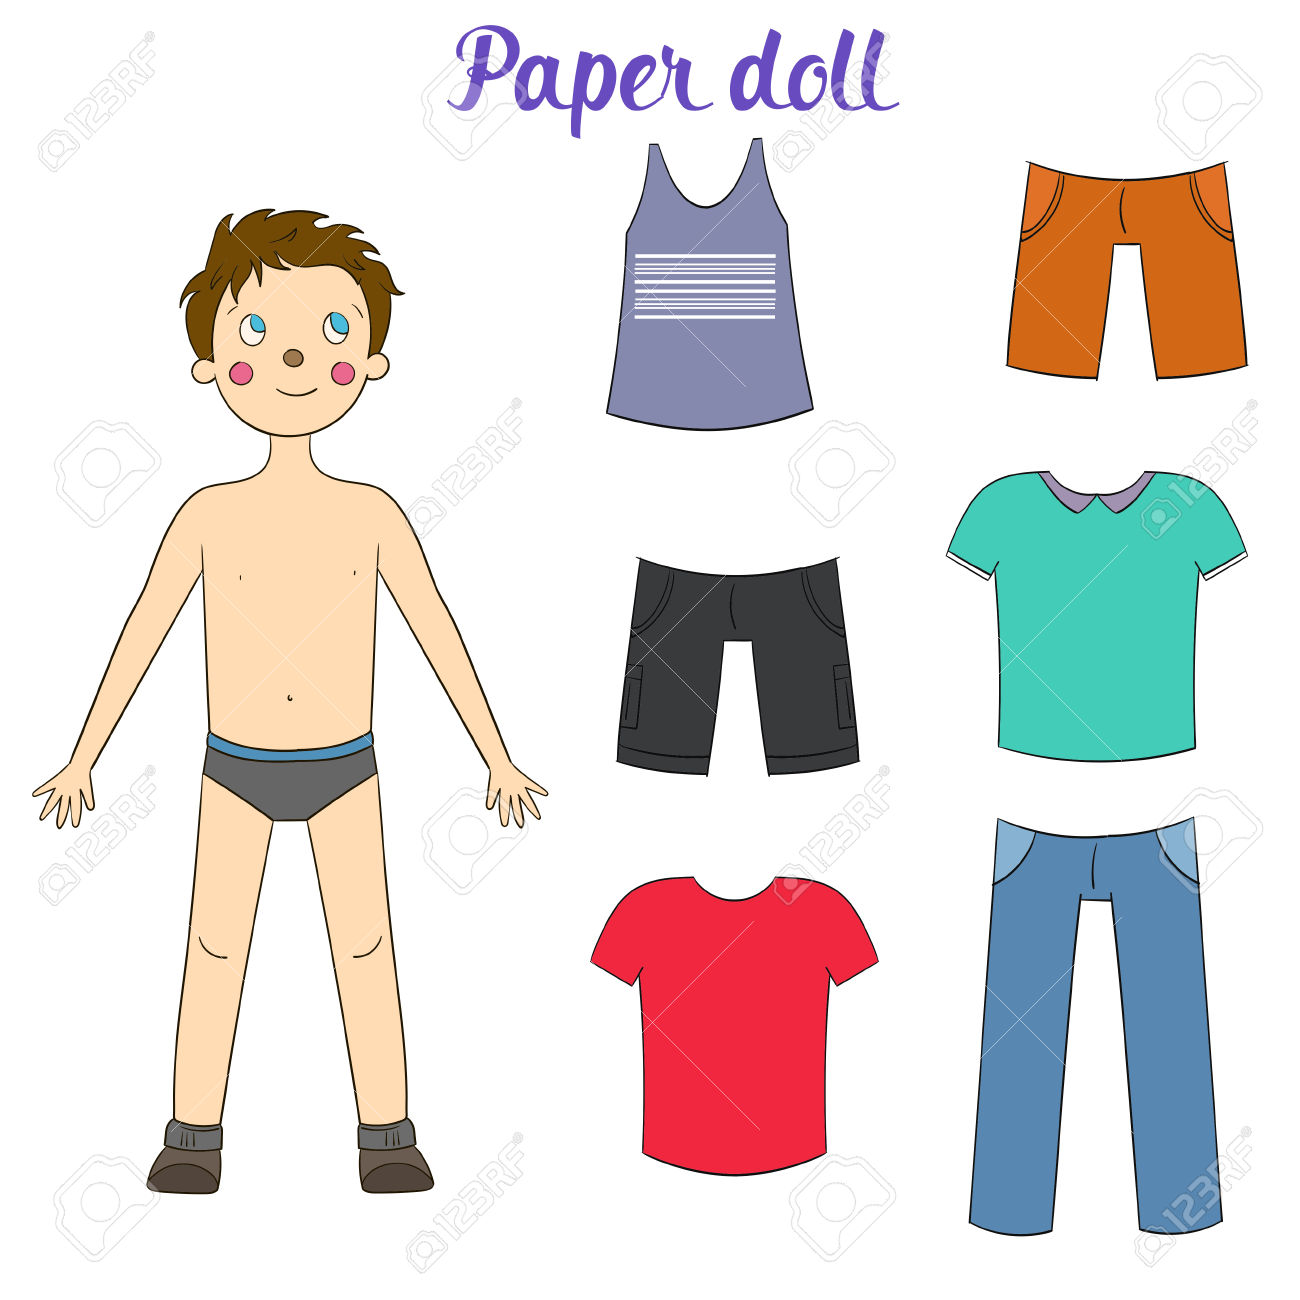 doll clipart at getdrawings com free for personal use doll clipart rh getdrawings com paper doll clipart for free paper doll clip art images